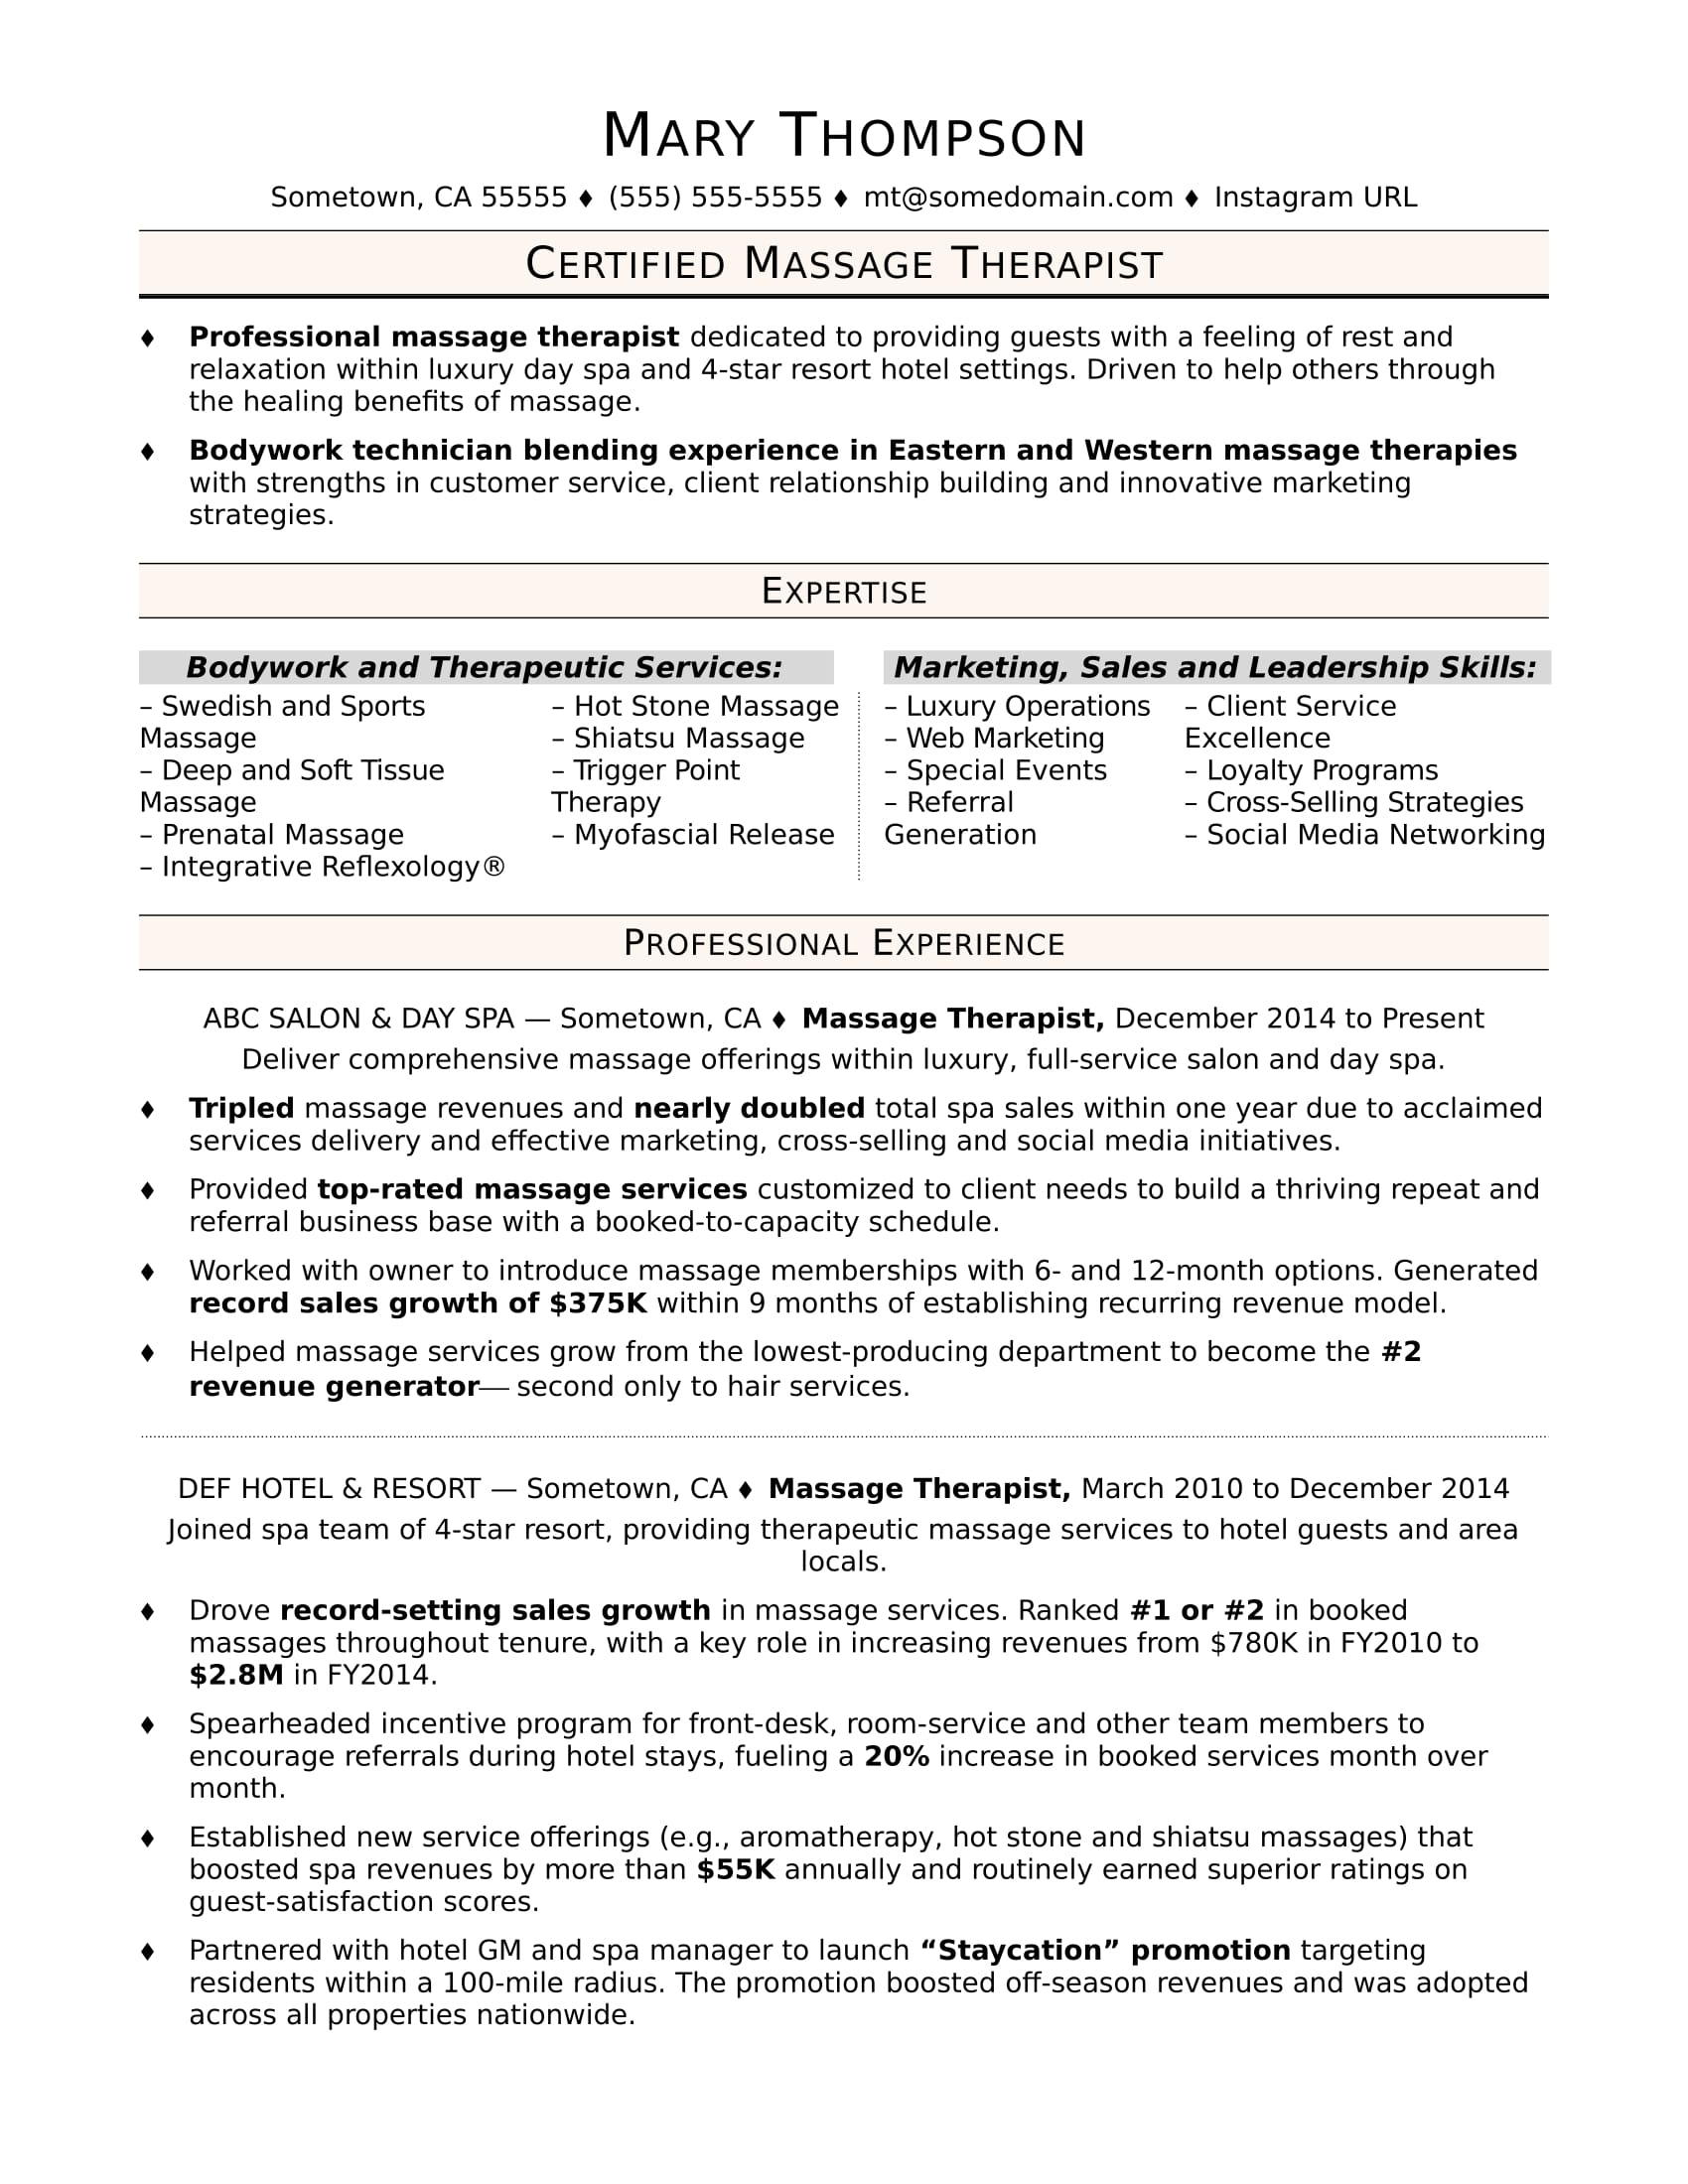 Massage therapist resume sample monster massage therapist resume sample altavistaventures Gallery